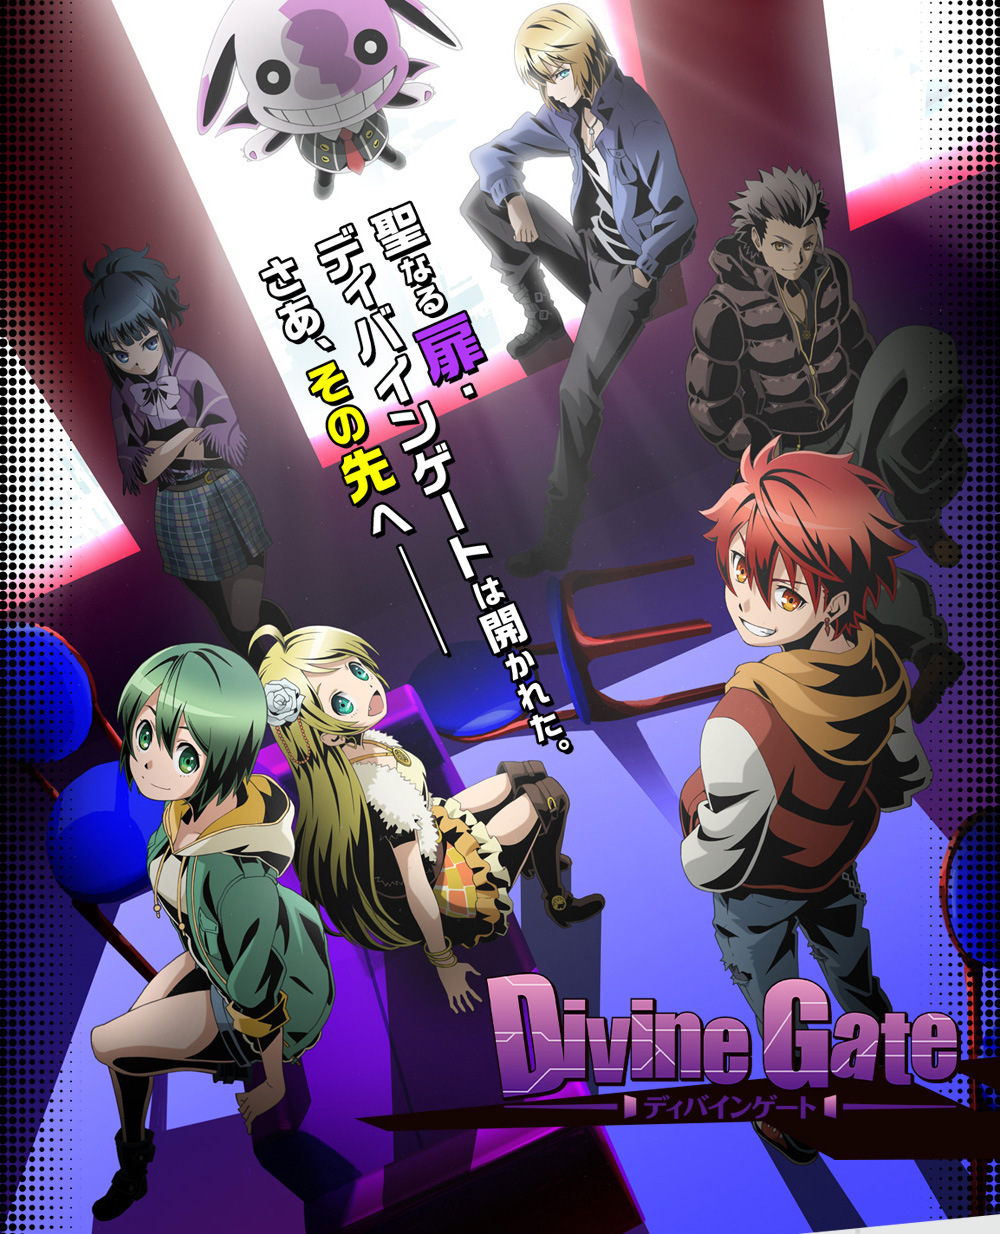 Smartphone Game Divine Gate Gets TV Anime Adaptation Slated for January